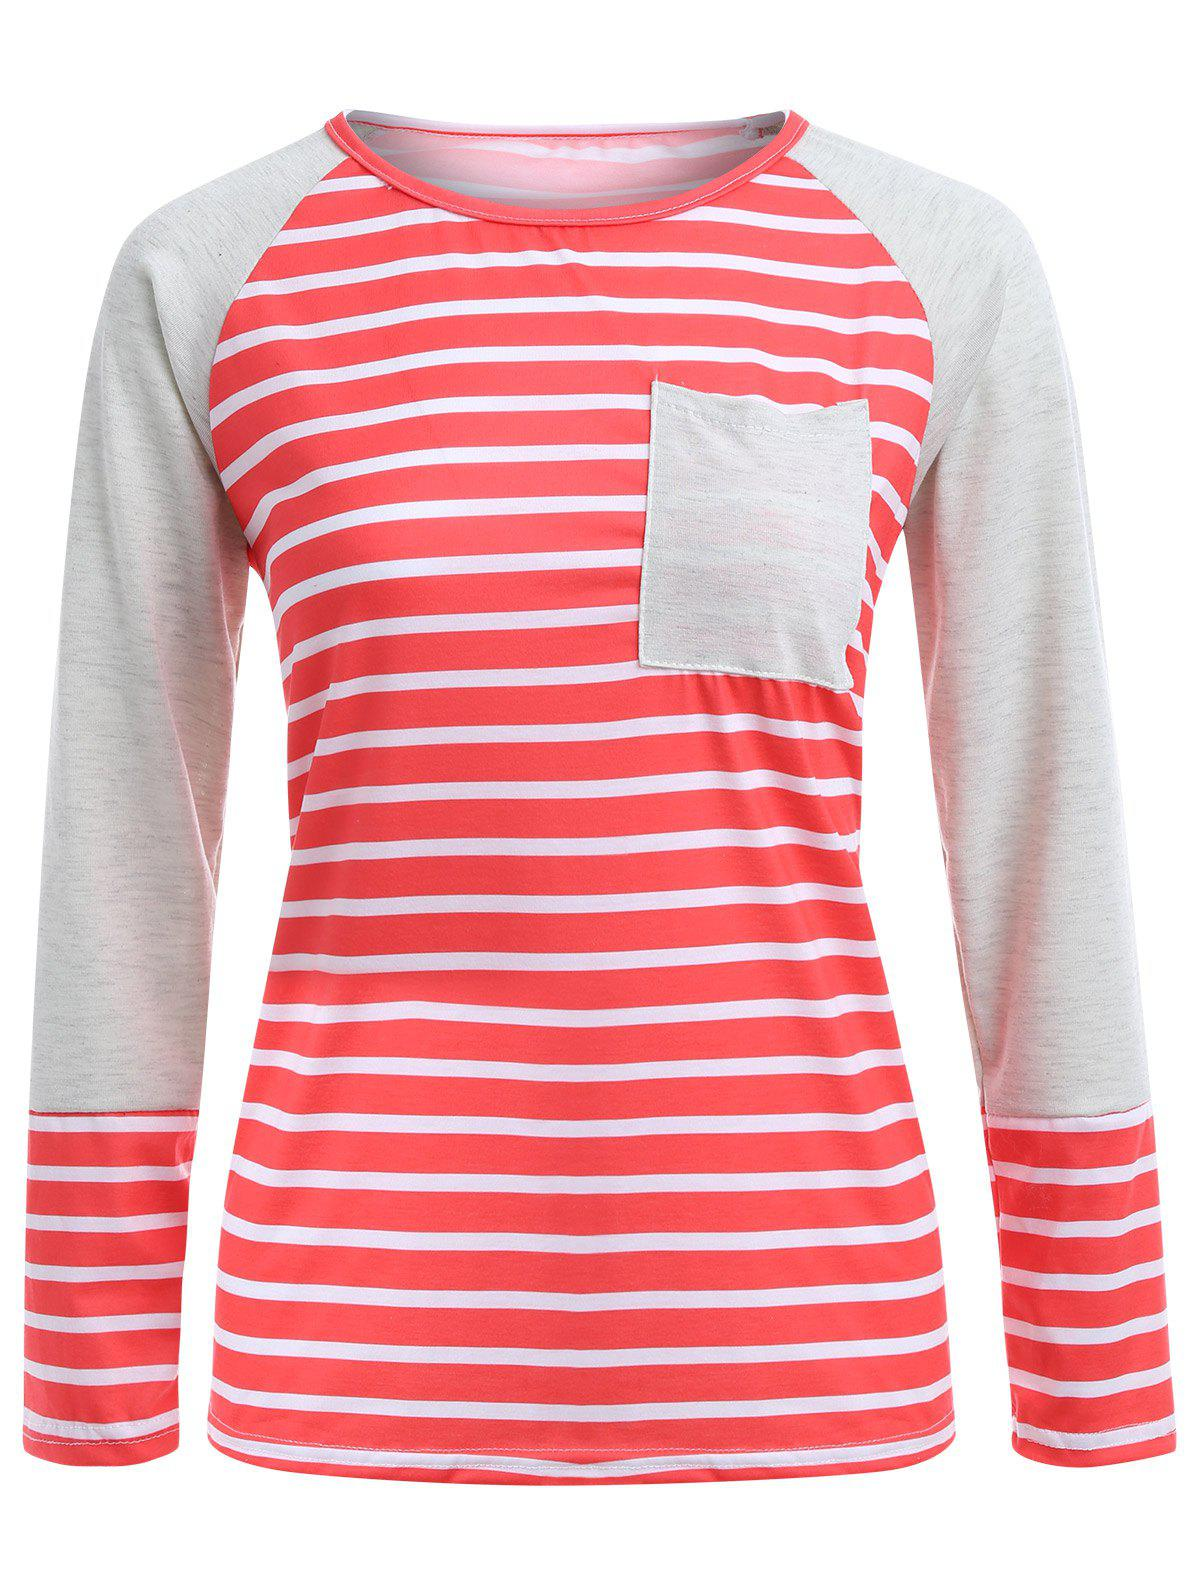 Chic Stripe Raglan Sleeve Pocket T-Shirt